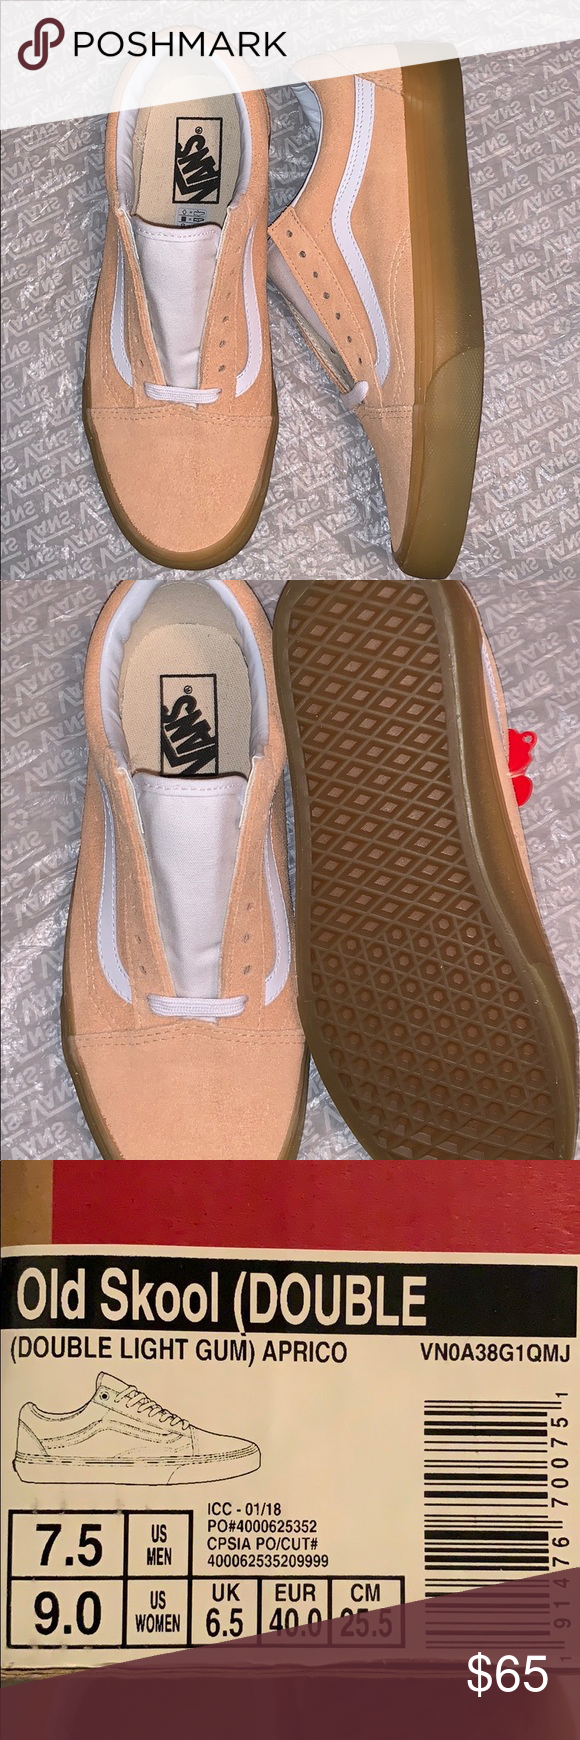 789dc62944c688 Old skool Vans Old school Vans double light gum apricot All suede vans with  leather side stripe Extra light gum sole so cute! Men s size 7.5 or women s  size ...